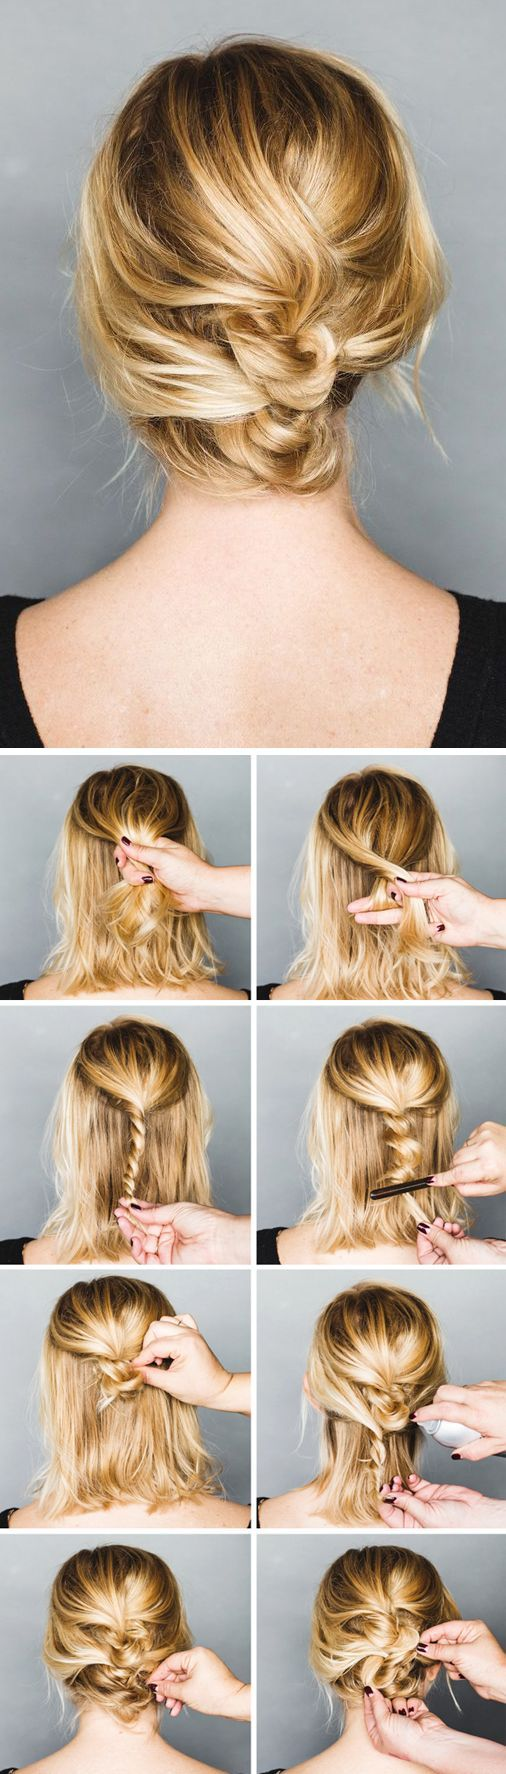 5 Gorgeous Messy Updos For Long Hair | Makeup Tutorials